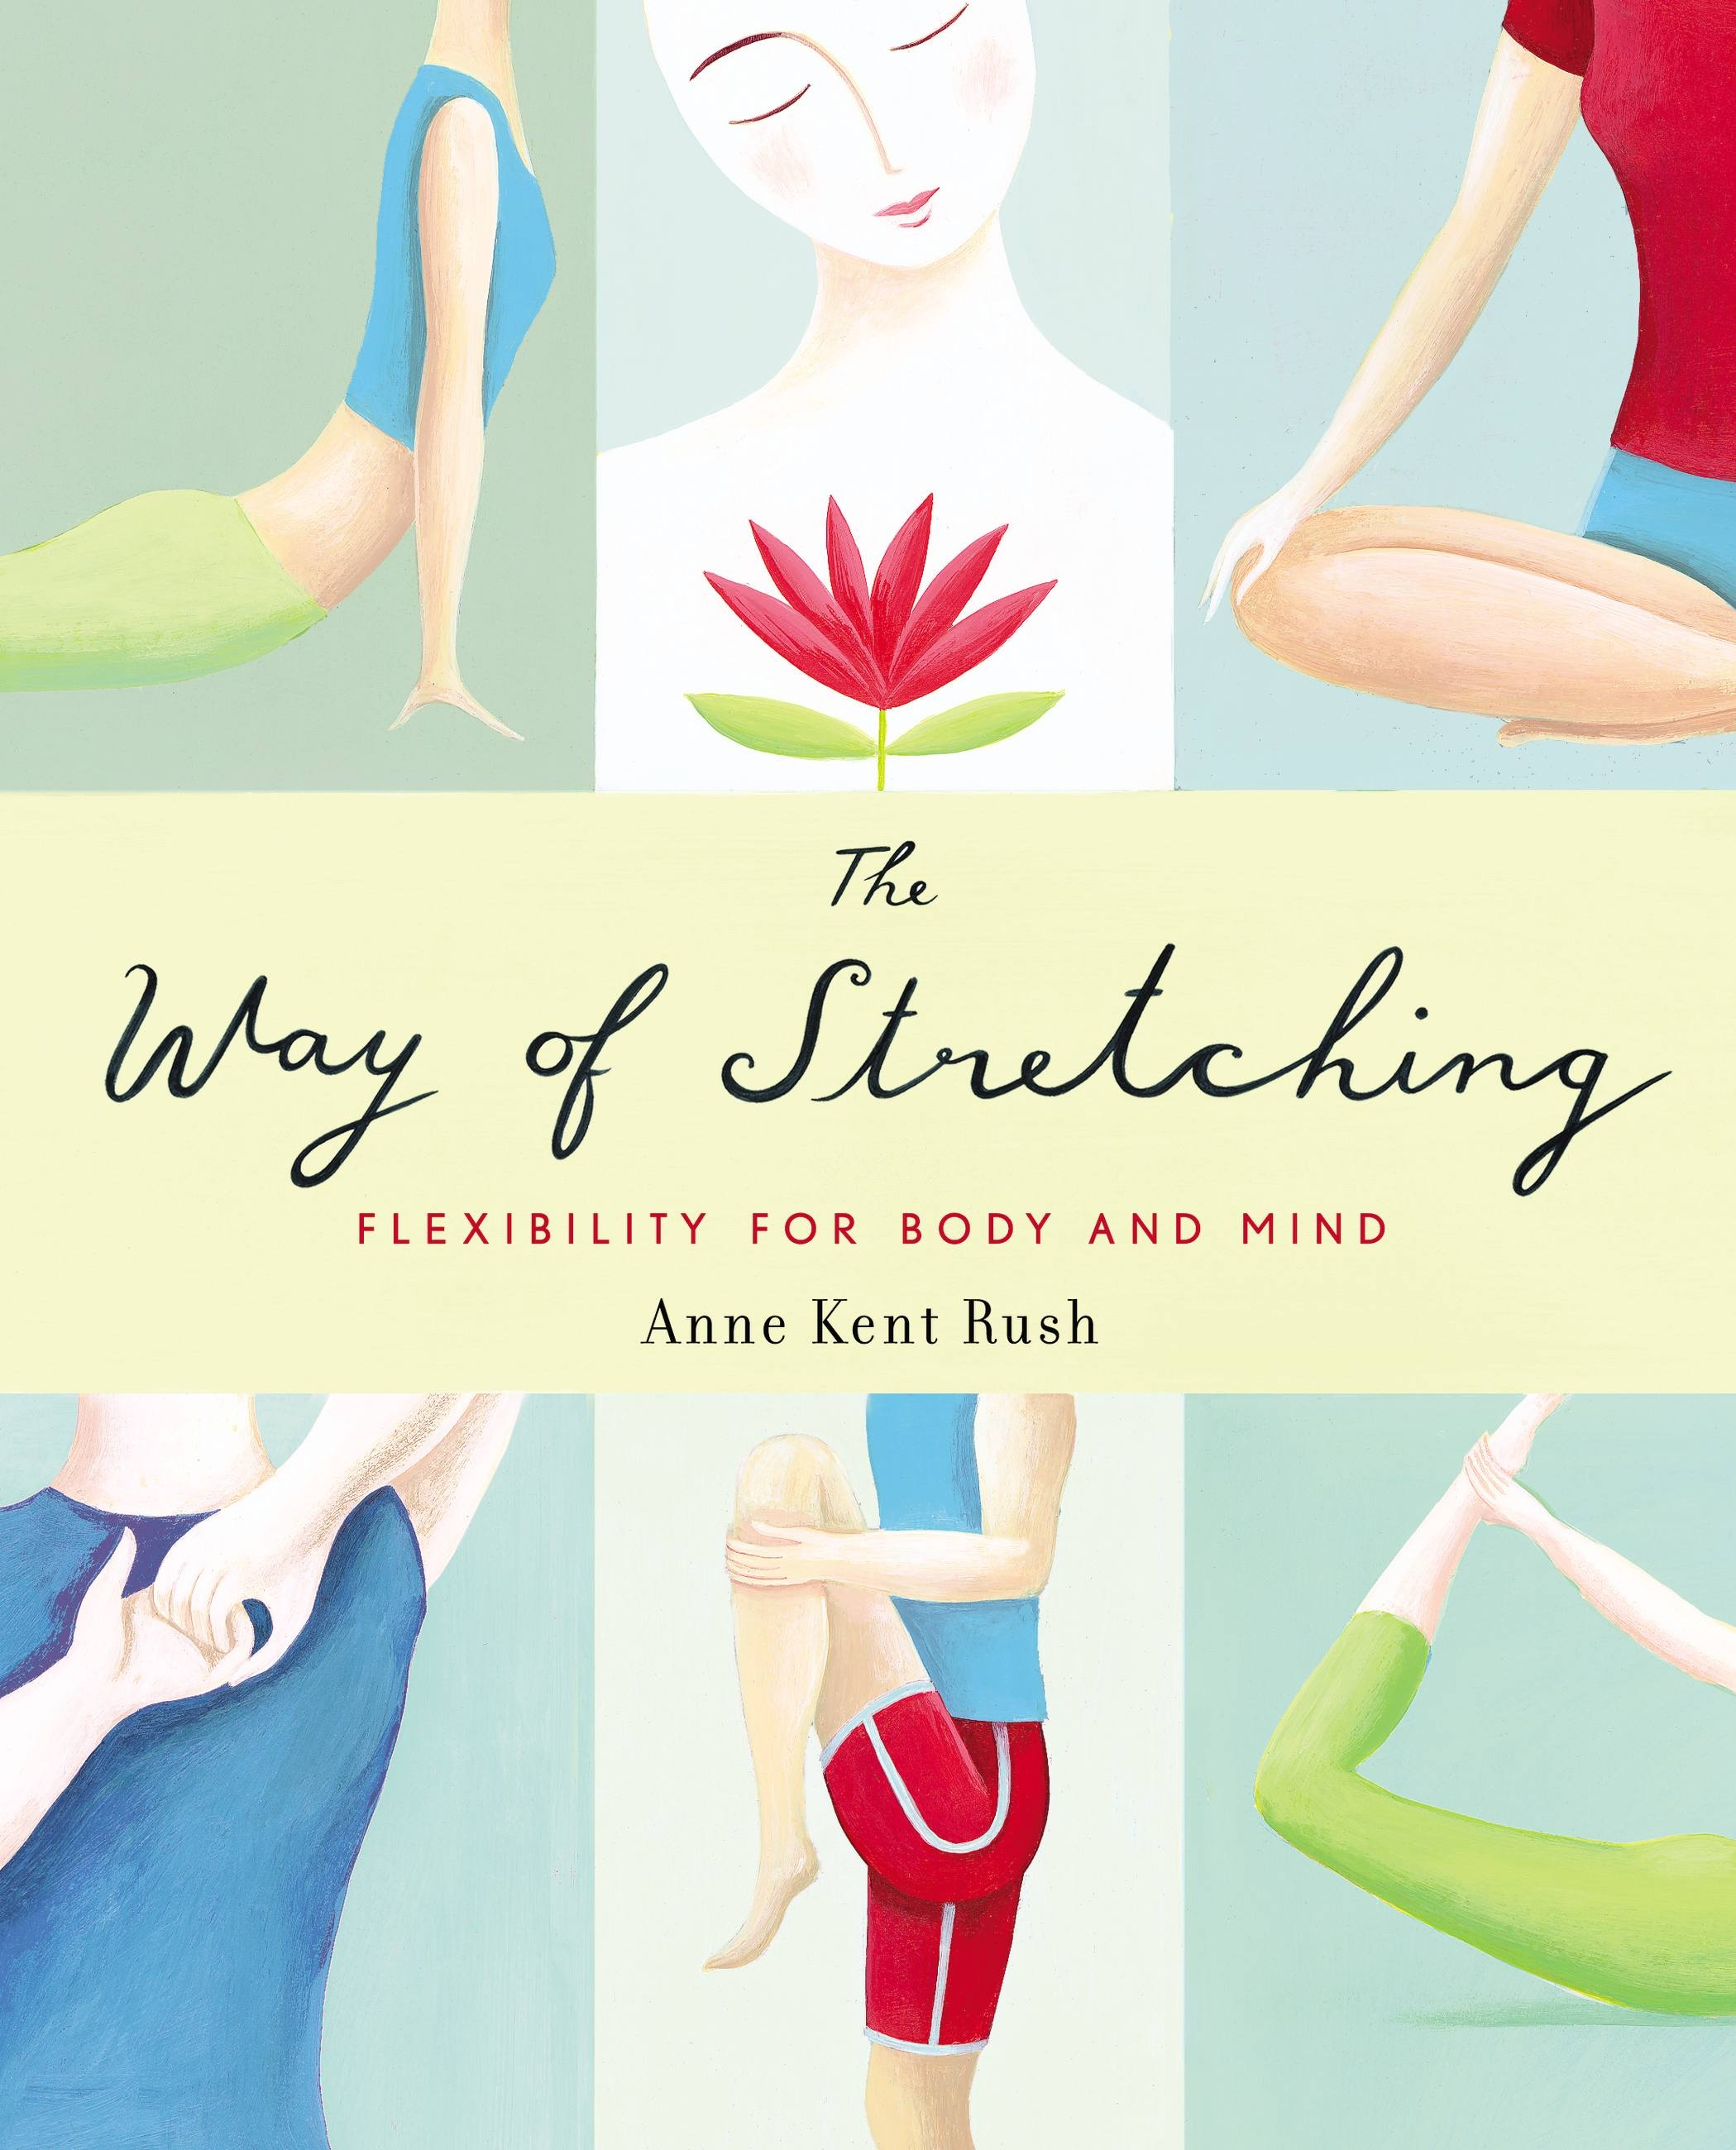 Way of Stretching, The